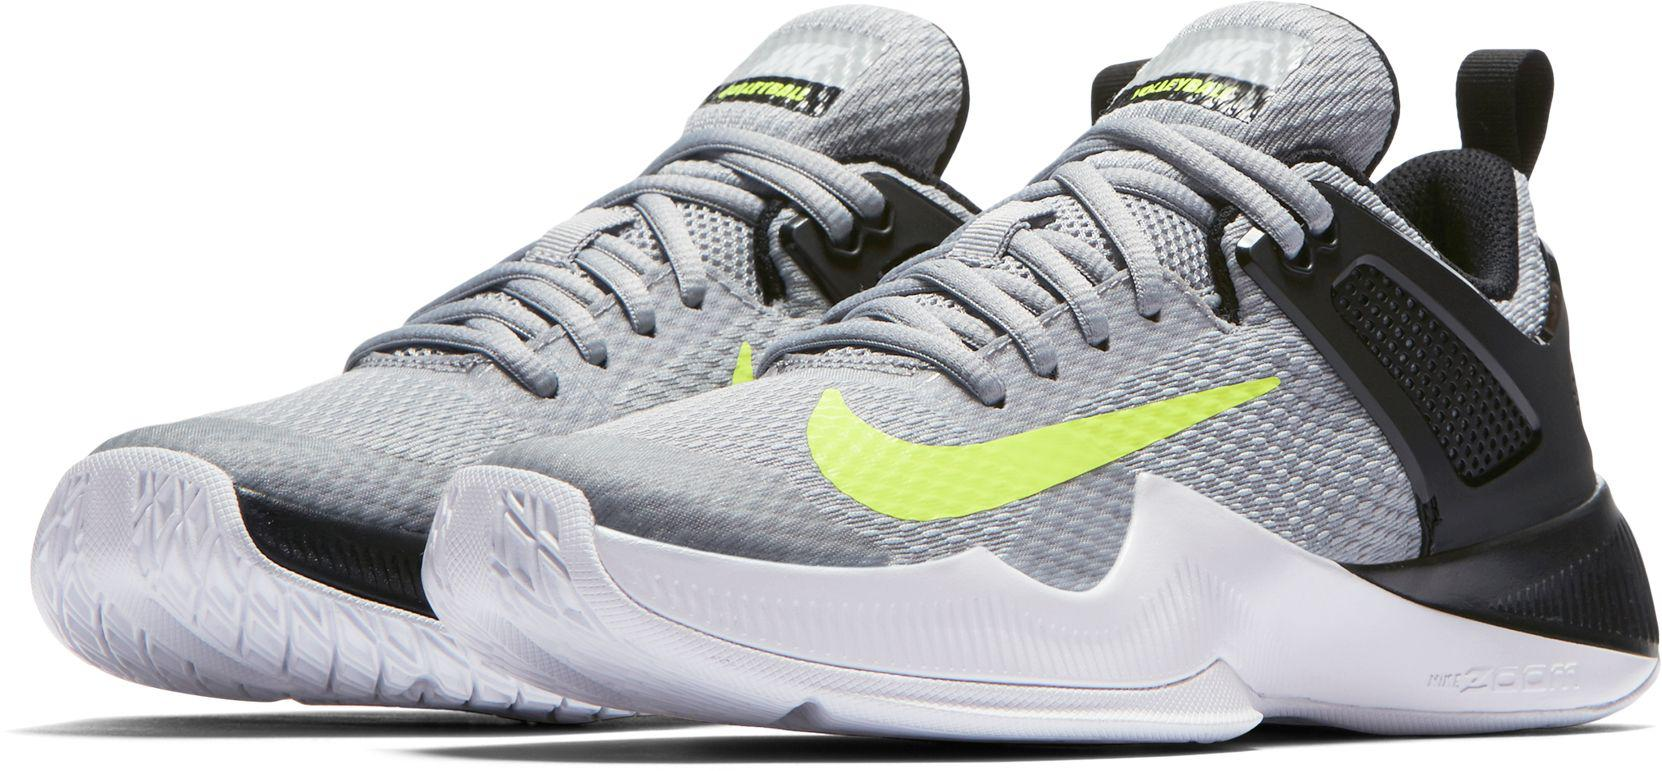 80b157924c4e3 Lyst - Nike Air Zoom Hyperace Volleyball Shoes in Gray for Men